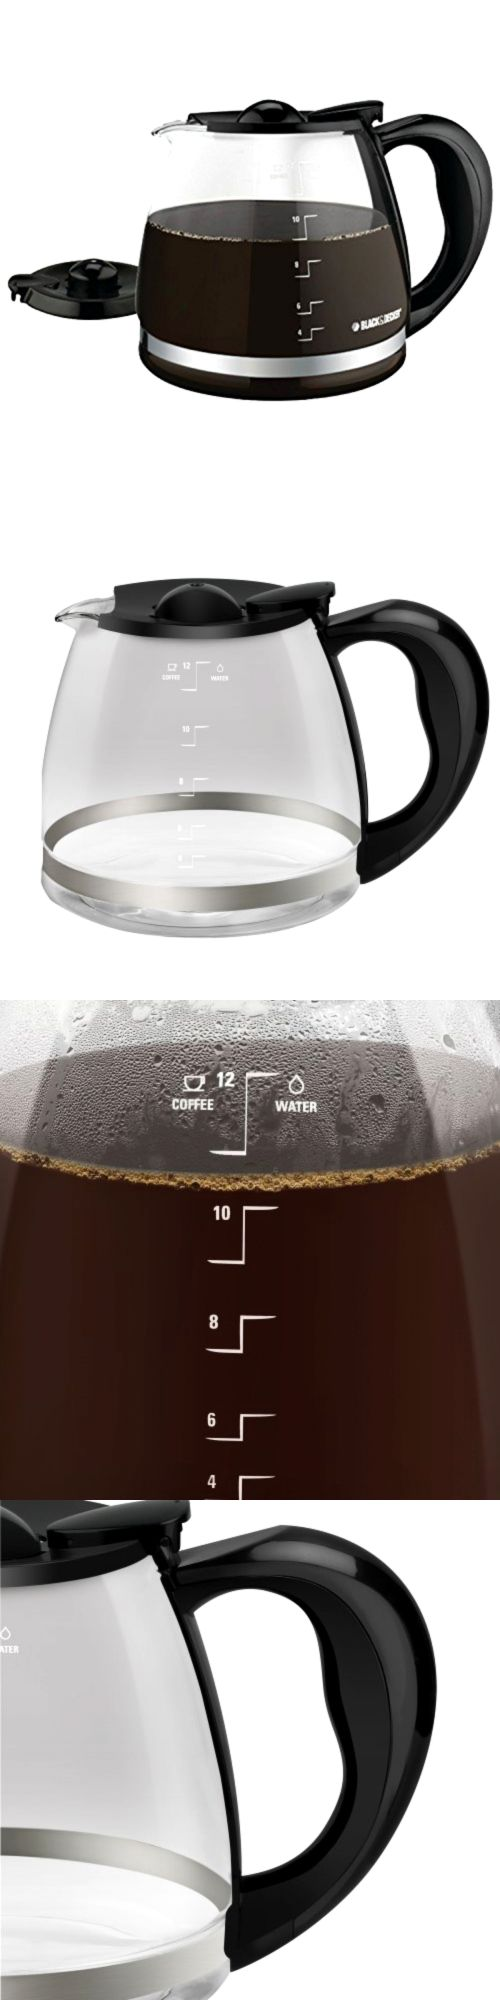 Replacement Parts and Accs 99565: Black And Decker Coffee Pot 12 Cup Glass Replacement Carafe Espresso Maker Handl -> BUY IT NOW ONLY: $53.5 on eBay!